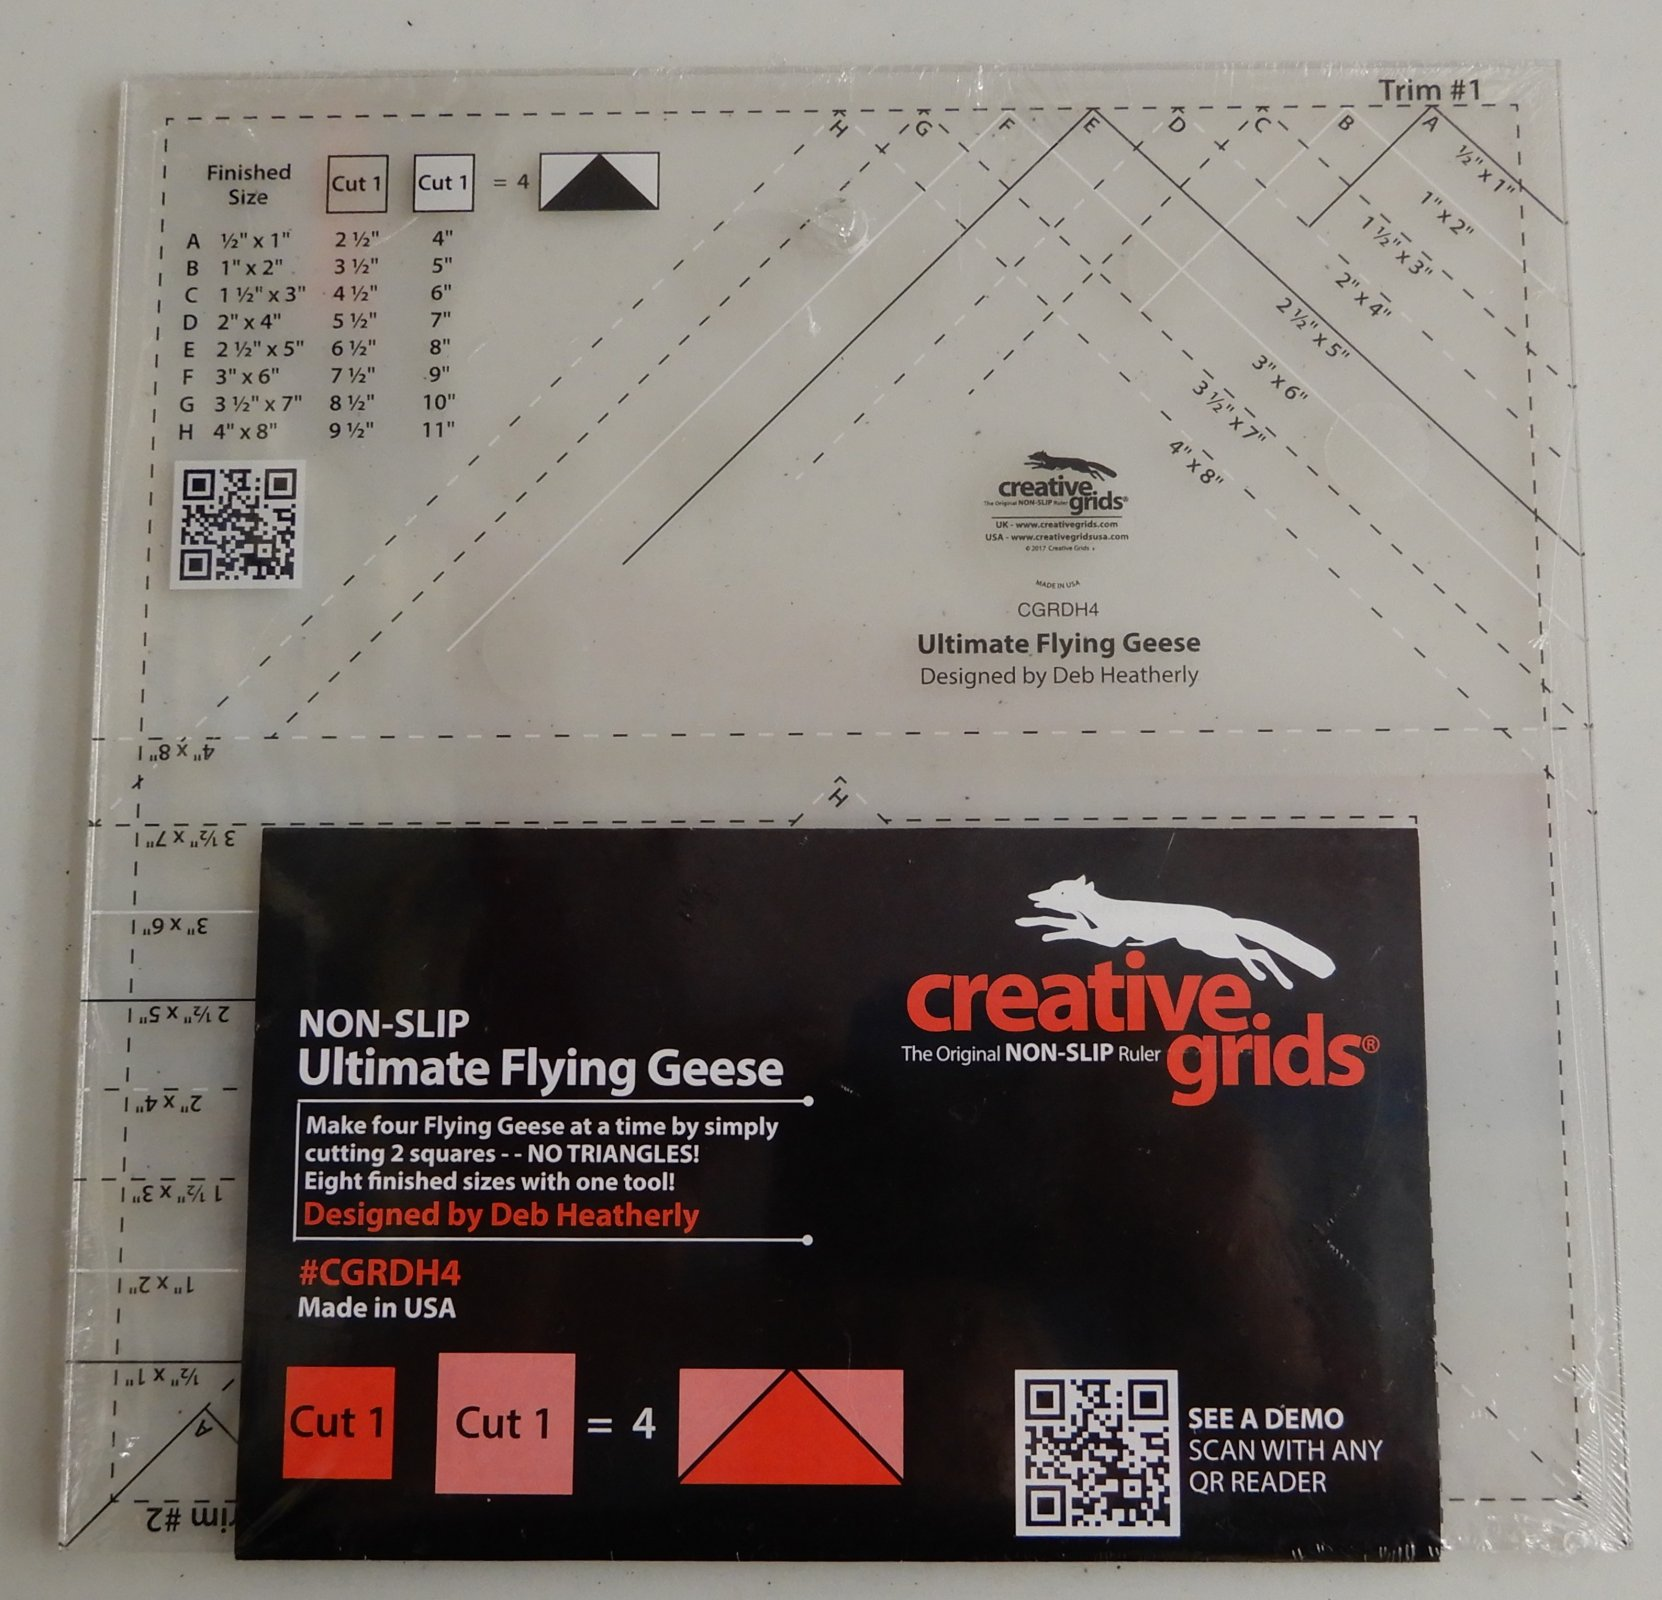 Creative Grids Ultimate Flying Geese